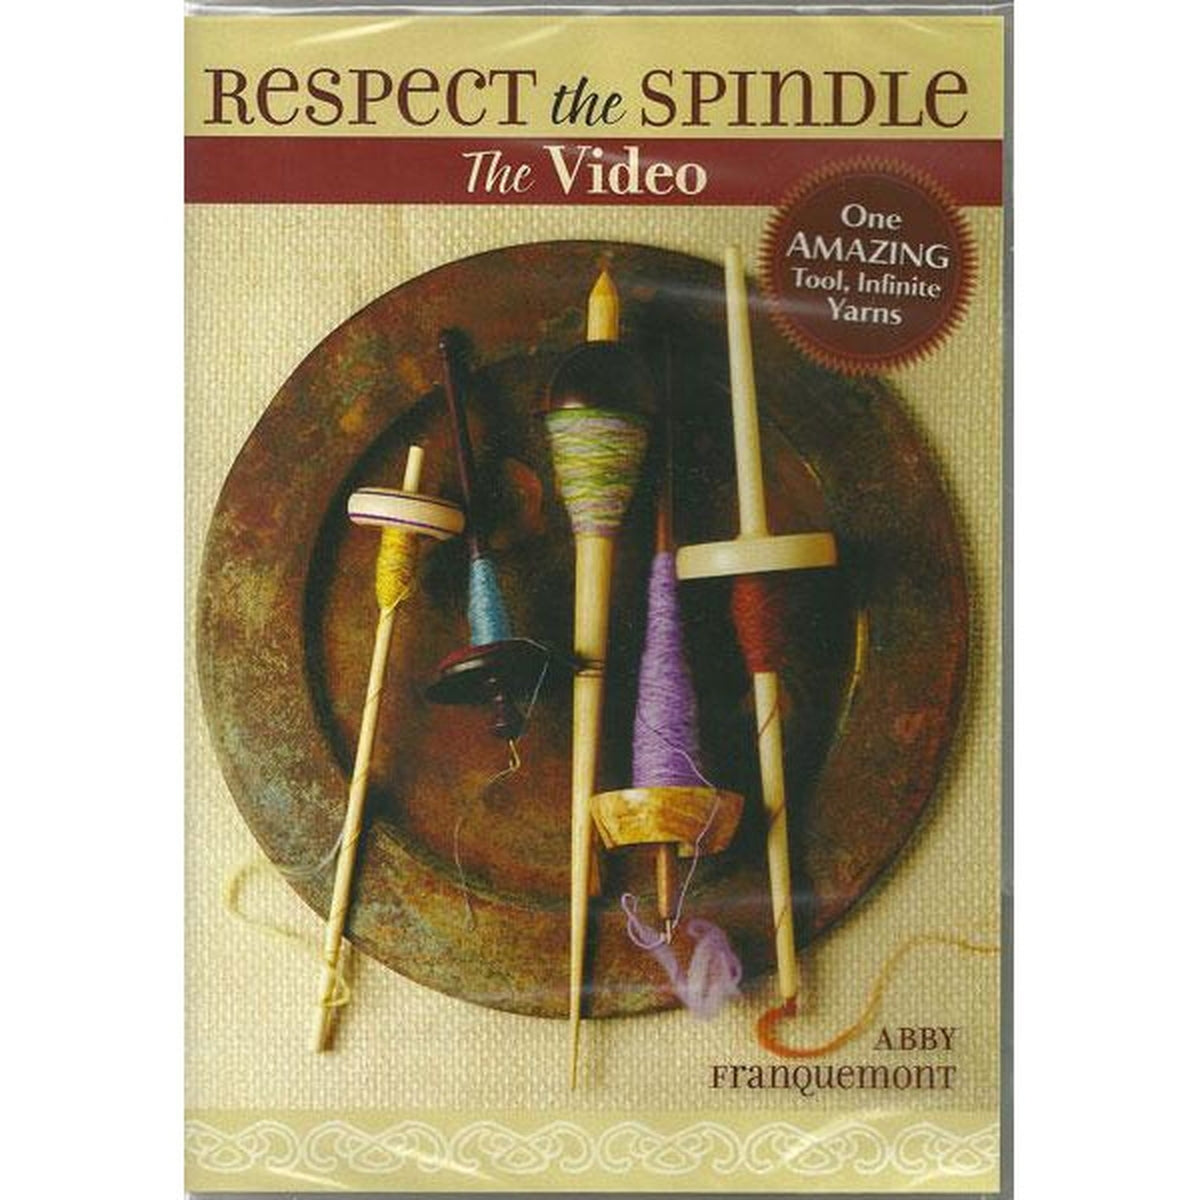 Respect the Spindle: The Video